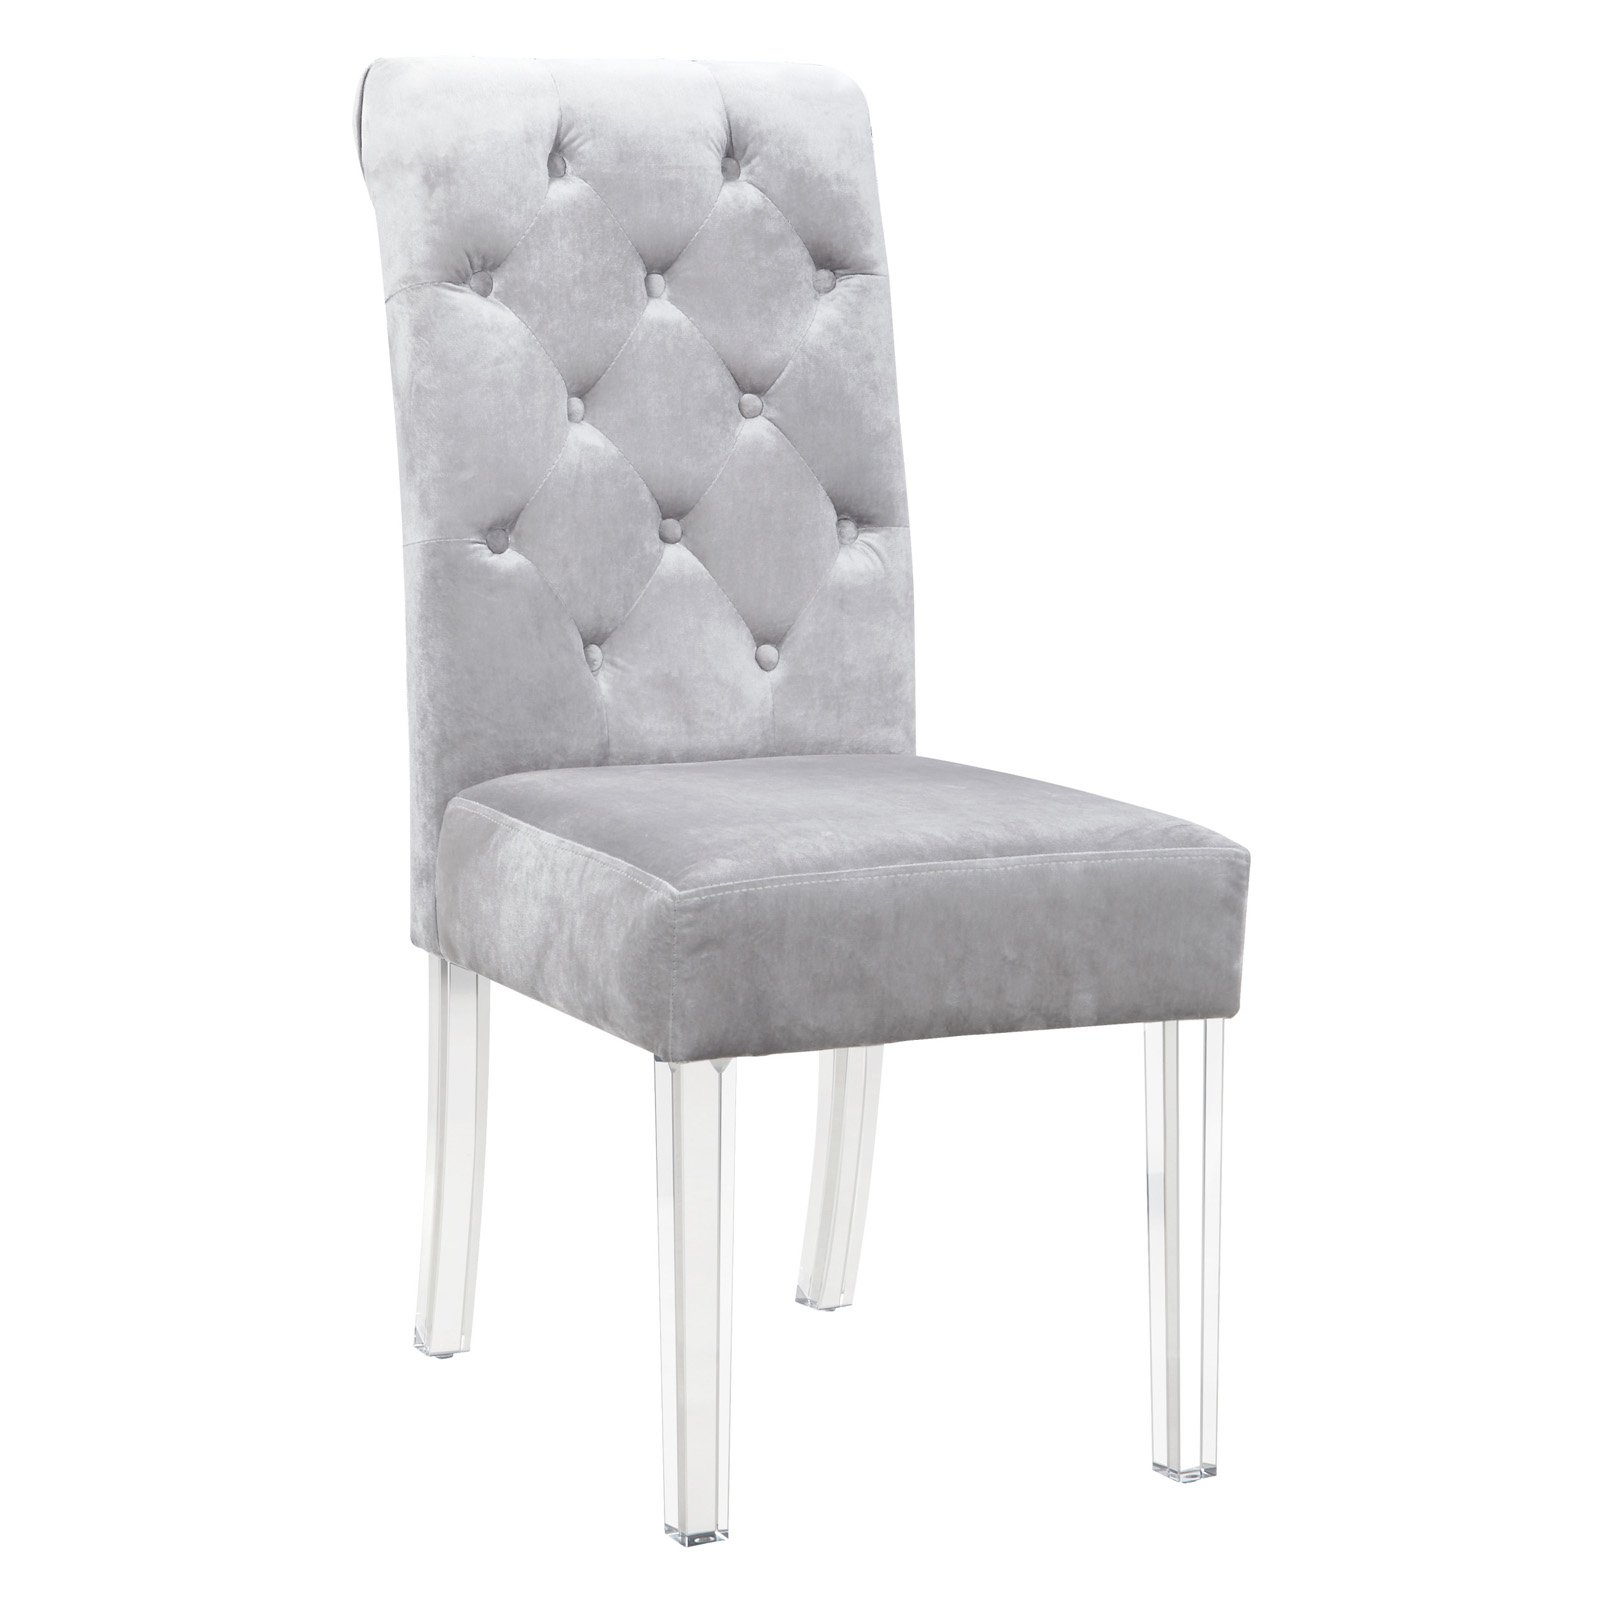 Chic Home Tate Tufted Velvet Dining Side Chair Set Of 2 Walmart Com Walmart Com